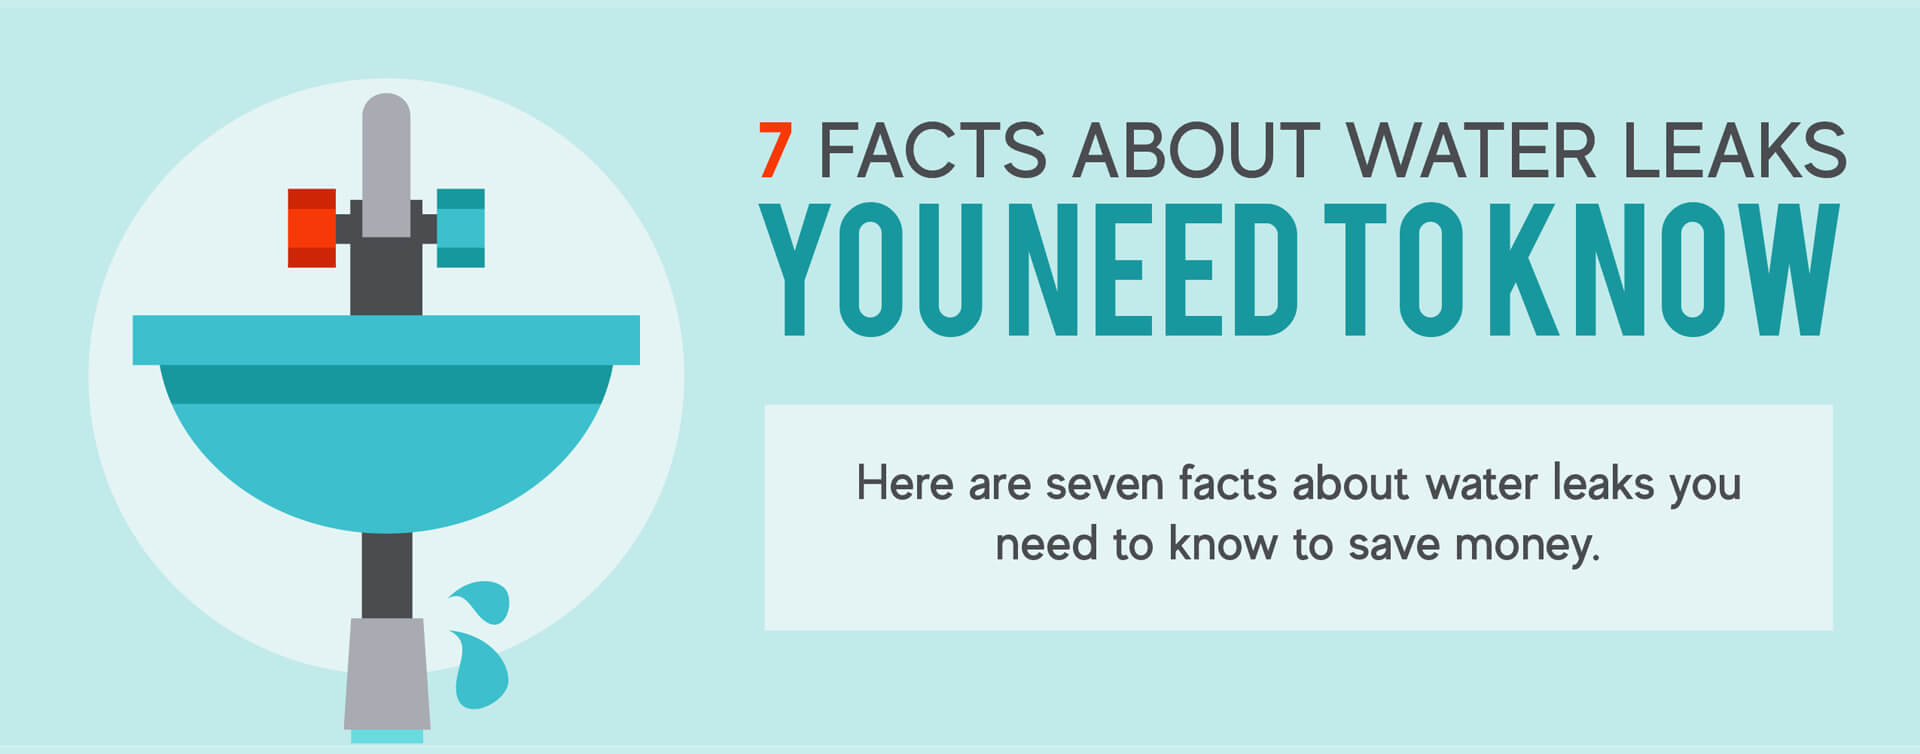 7 facts about water leaks you need to know banner